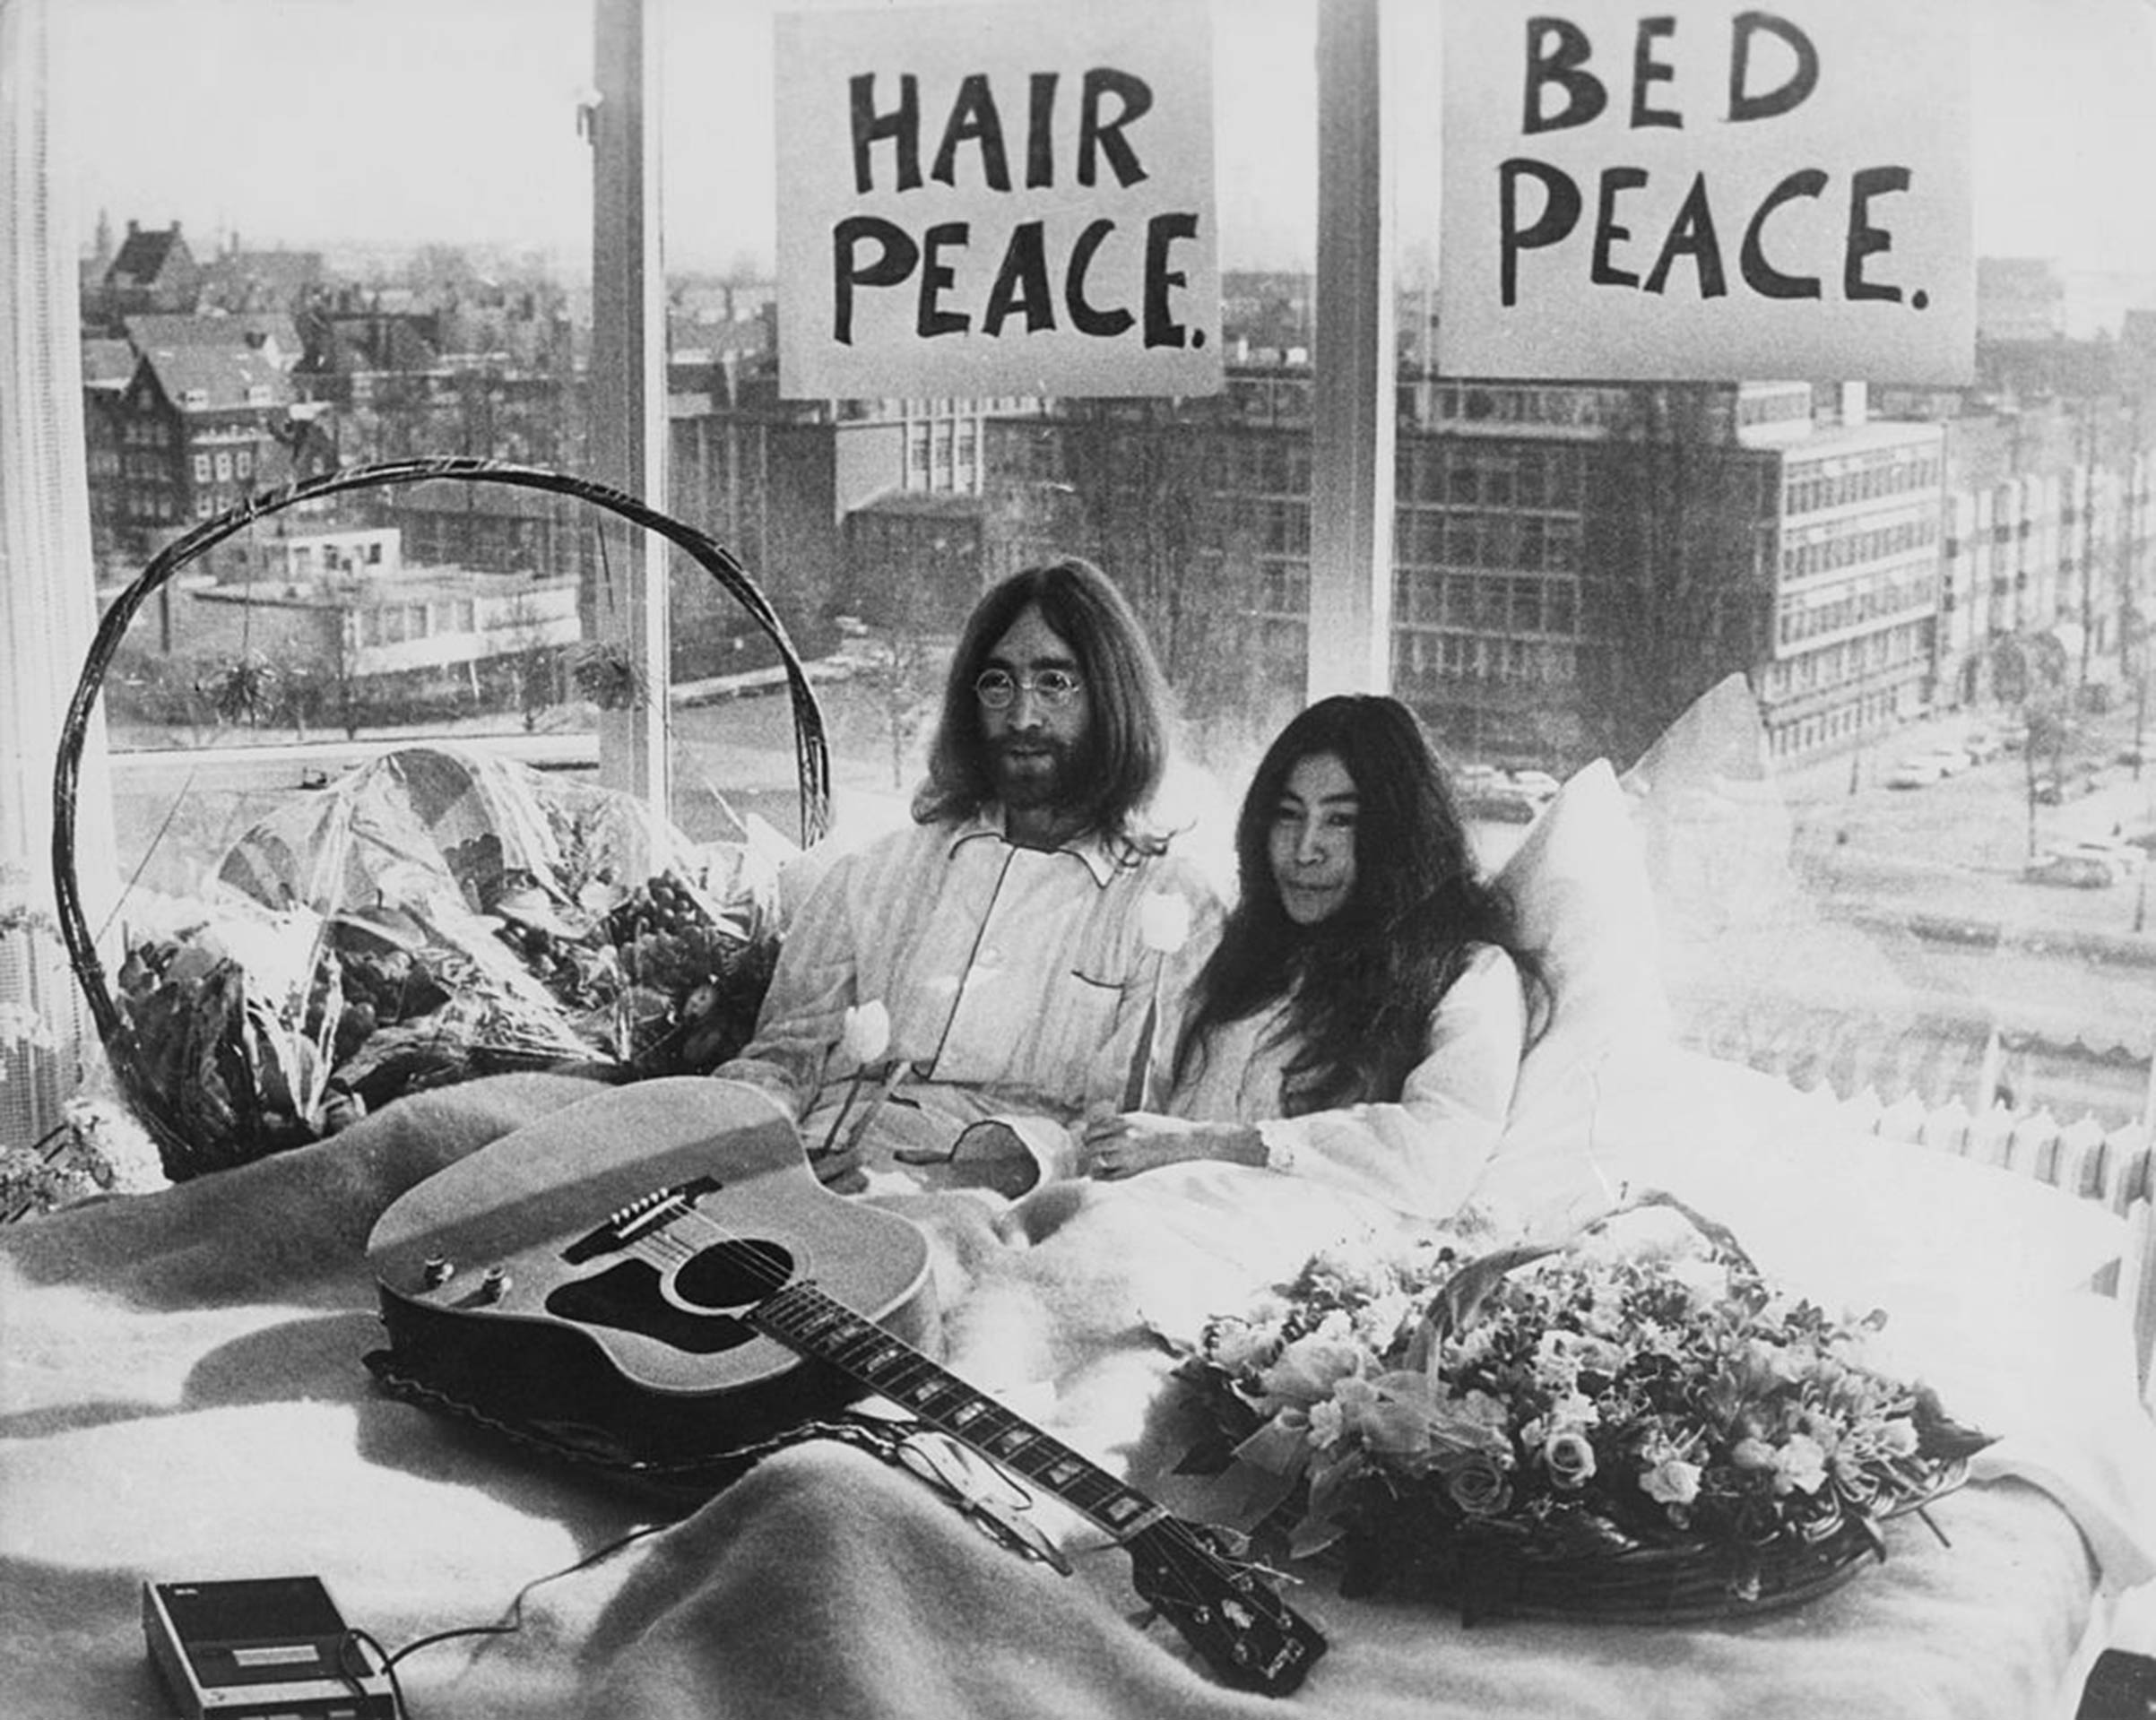 Newly-weds John Lennon of The Beatles and artist Yoko Ono kick-off a bed-in for peace on Mar. 25, 1969, in their suite at the Hilton Amsterdam in The Netherlands.